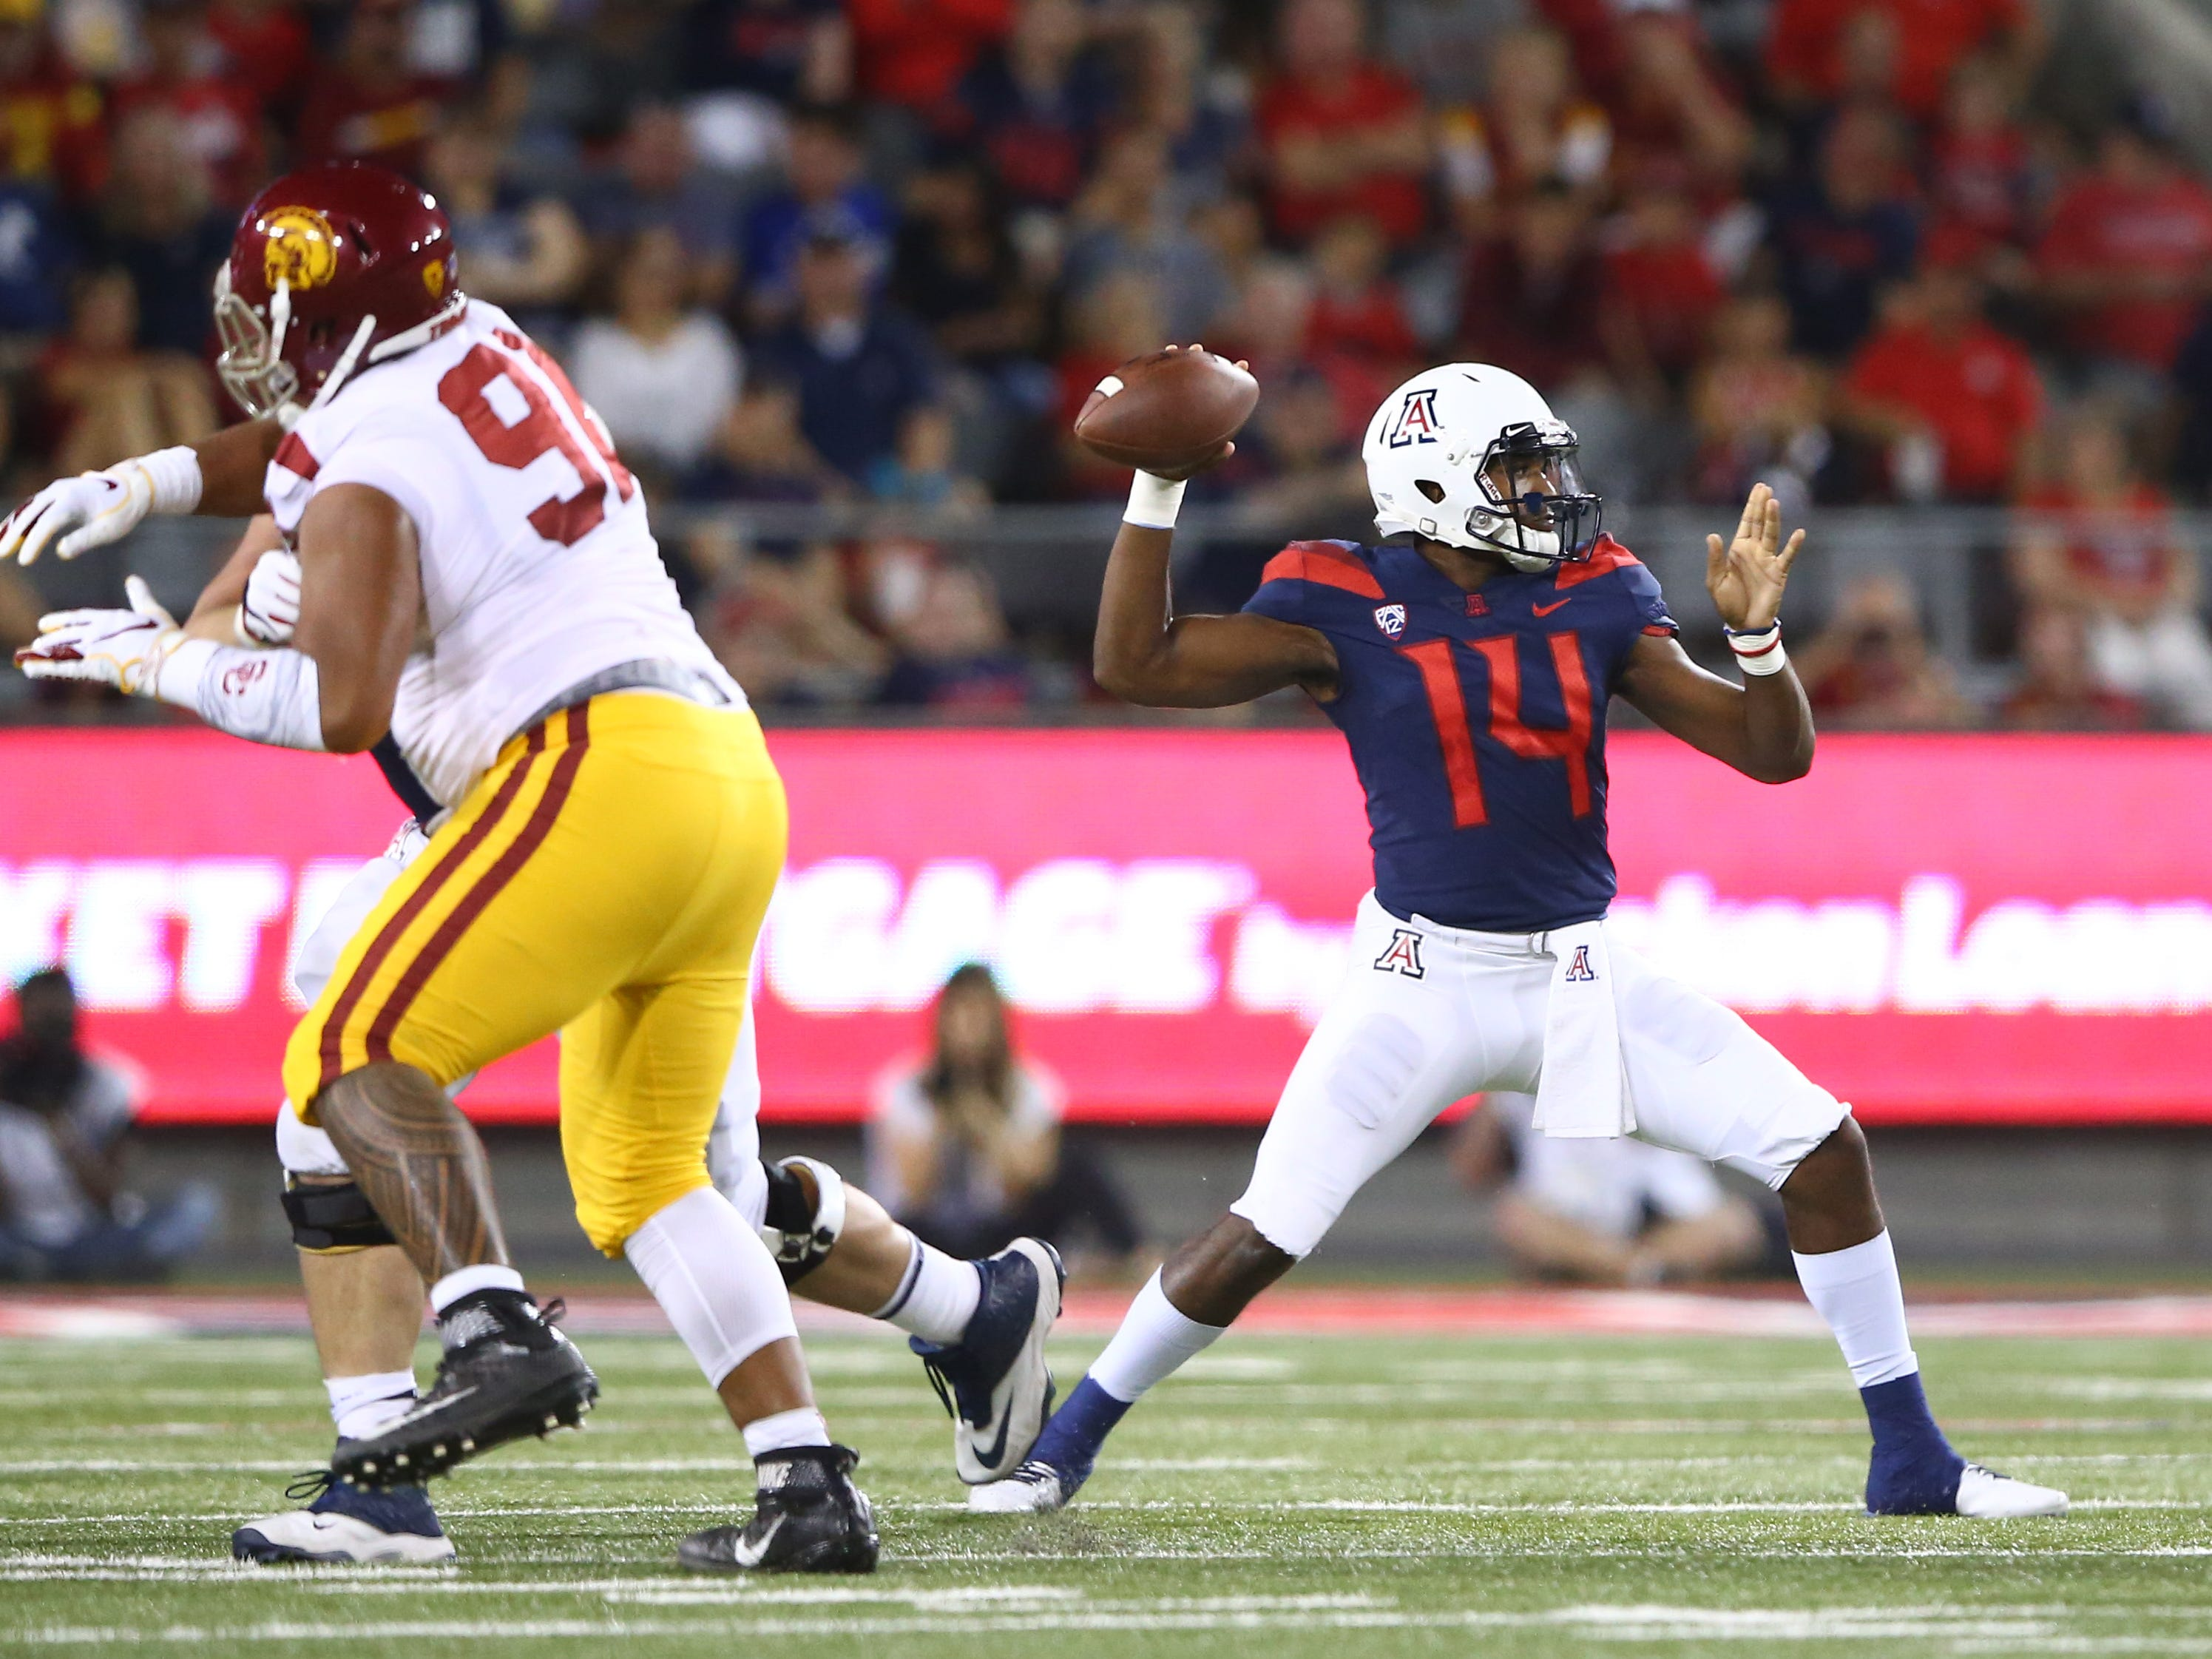 Sep 29, 2018; Tucson, AZ, USA; Arizona Wildcats quarterback Khalil Tate (14) against the Southern California Trojans in the first half at Arizona Stadium. Mandatory Credit: Mark J. Rebilas-USA TODAY Sports